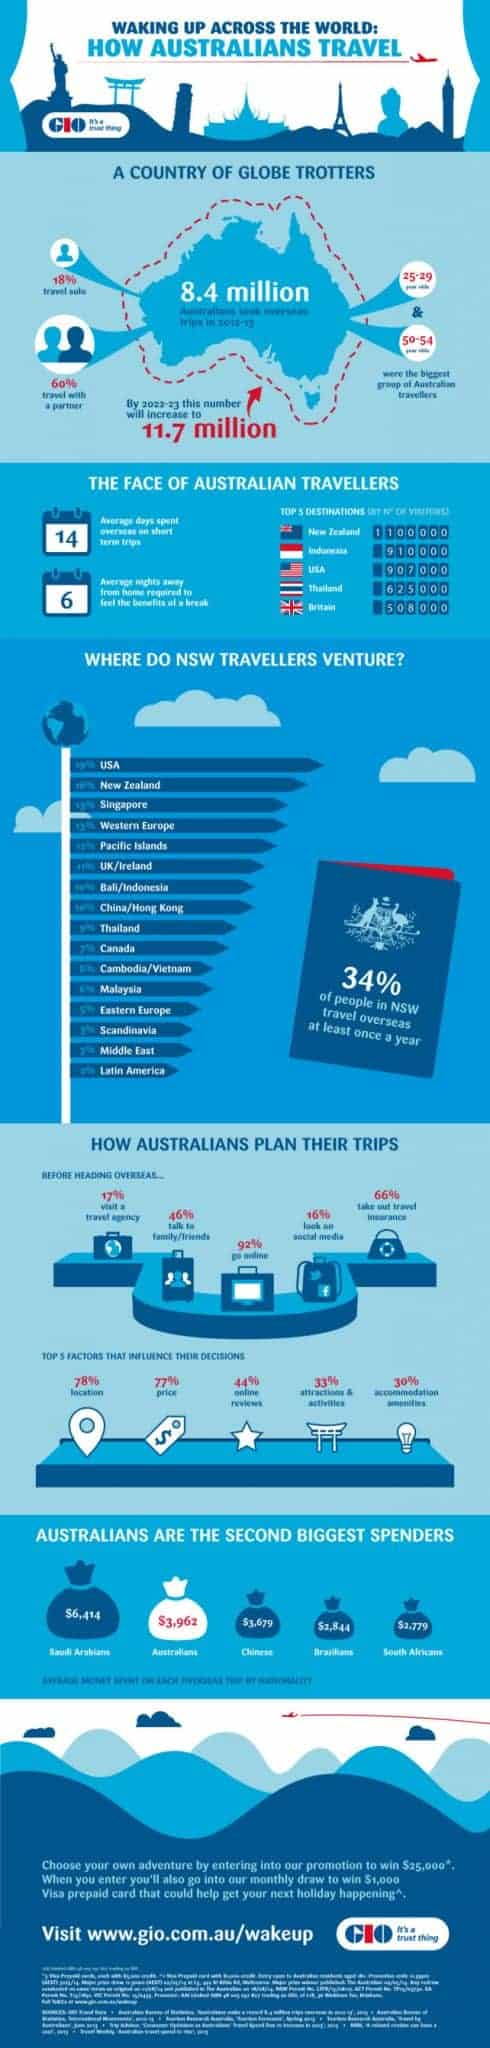 How Do Australians Like To Travel? [infographic]